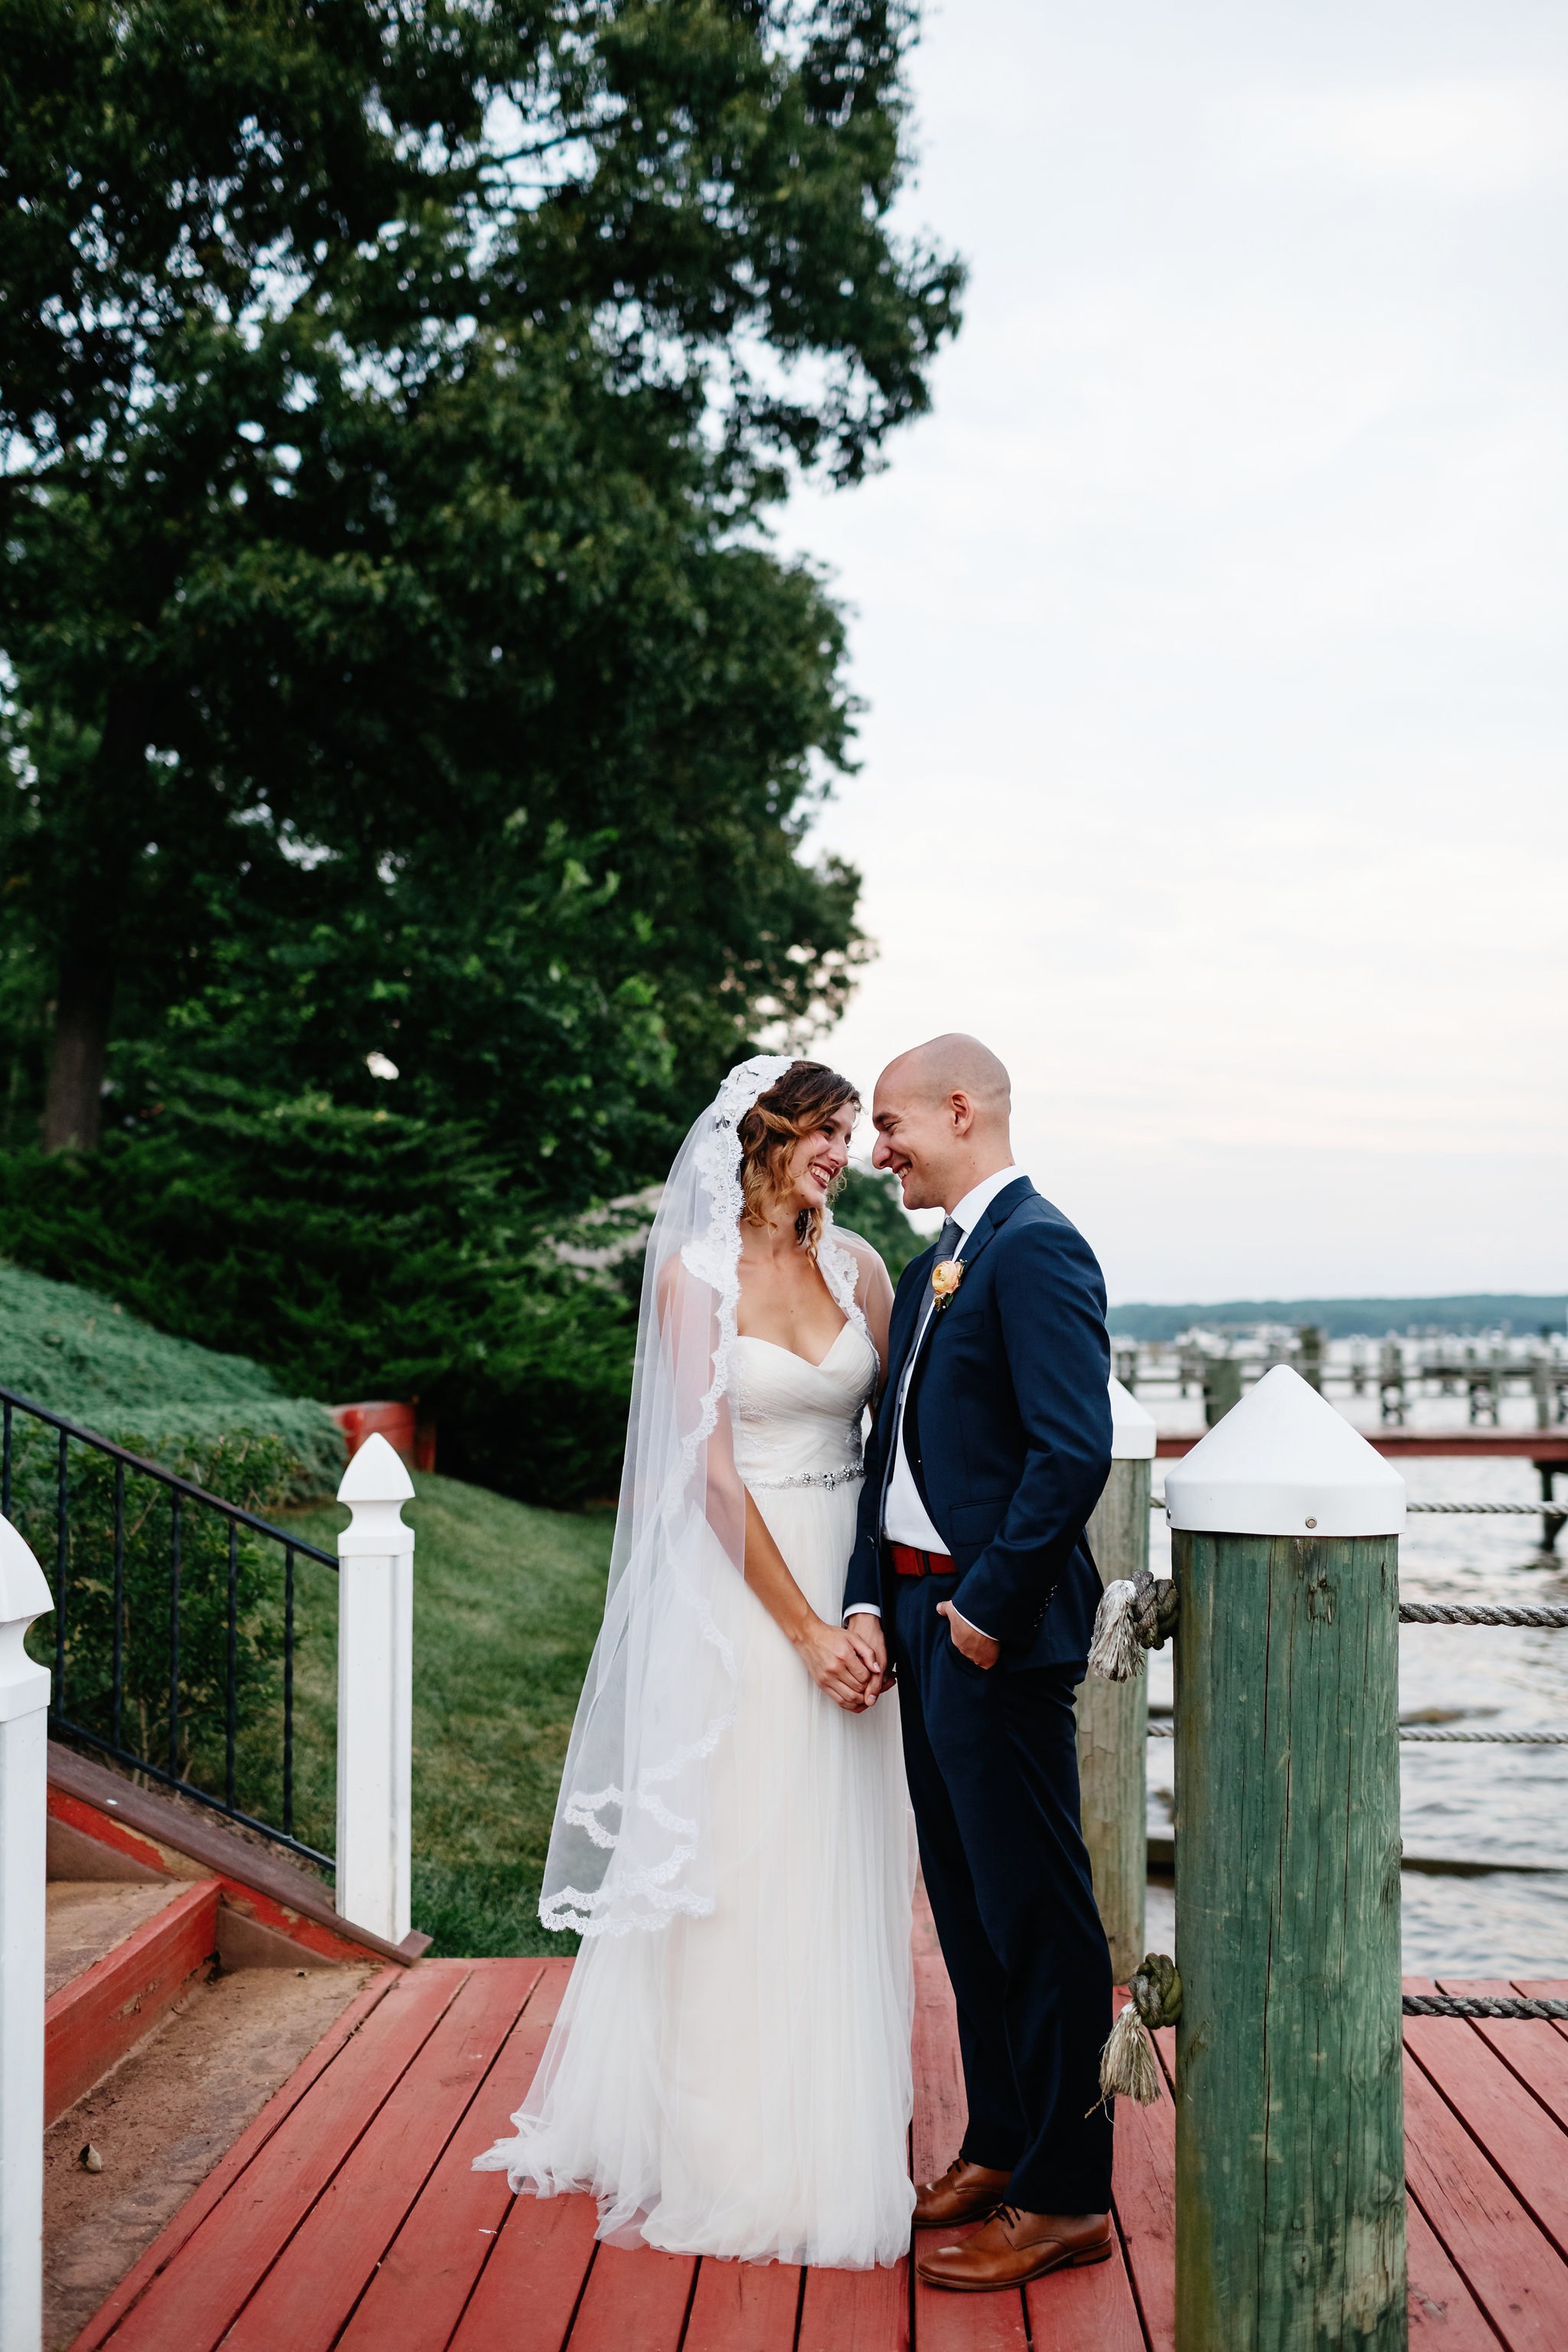 Maria&Dave2017-07-28at9.37.00AM17.jpg